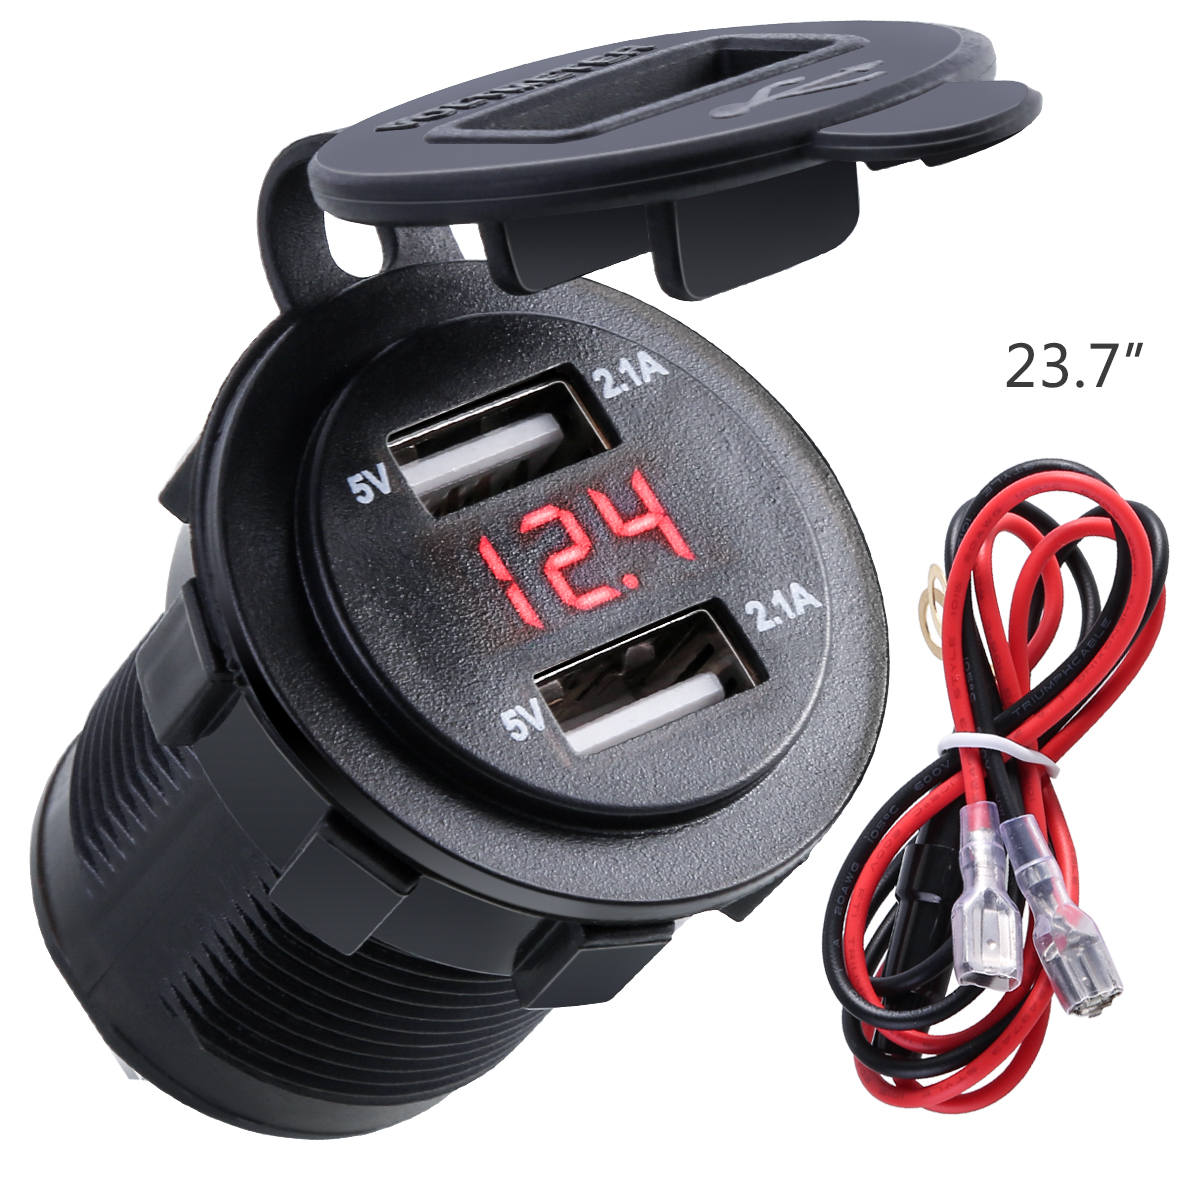 10A Fuse 2.1A With Voltmeter & Wire In-line Dual USB Charger Socket Waterproof Power Outlet For 12-24V Car Boat Motorcycle